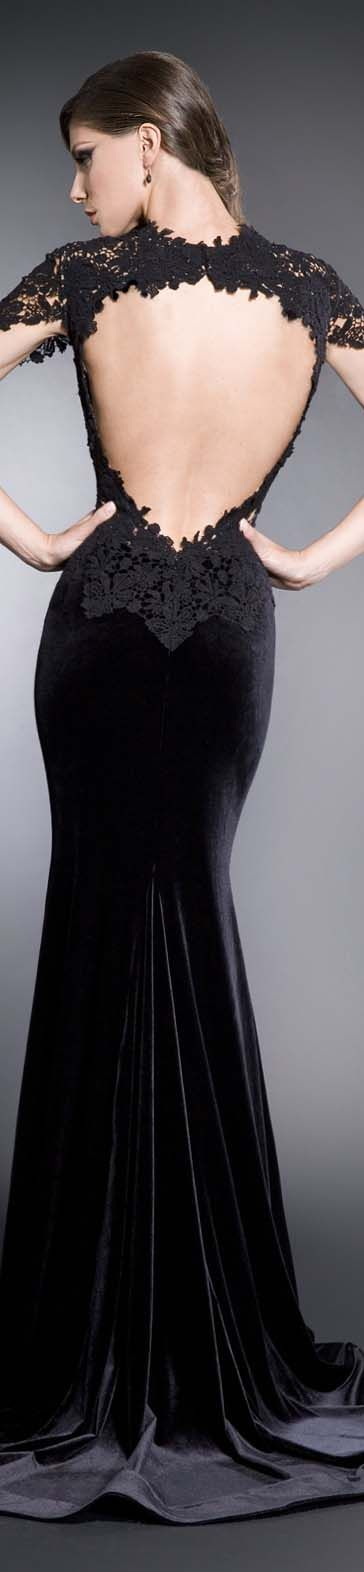 IN THE MOOD TO BE UNFORGETTABLE Colectie: IN THE MOOD / Rochie de seara #black #large #formal #dress #sexy #back <3 #HauteCouture